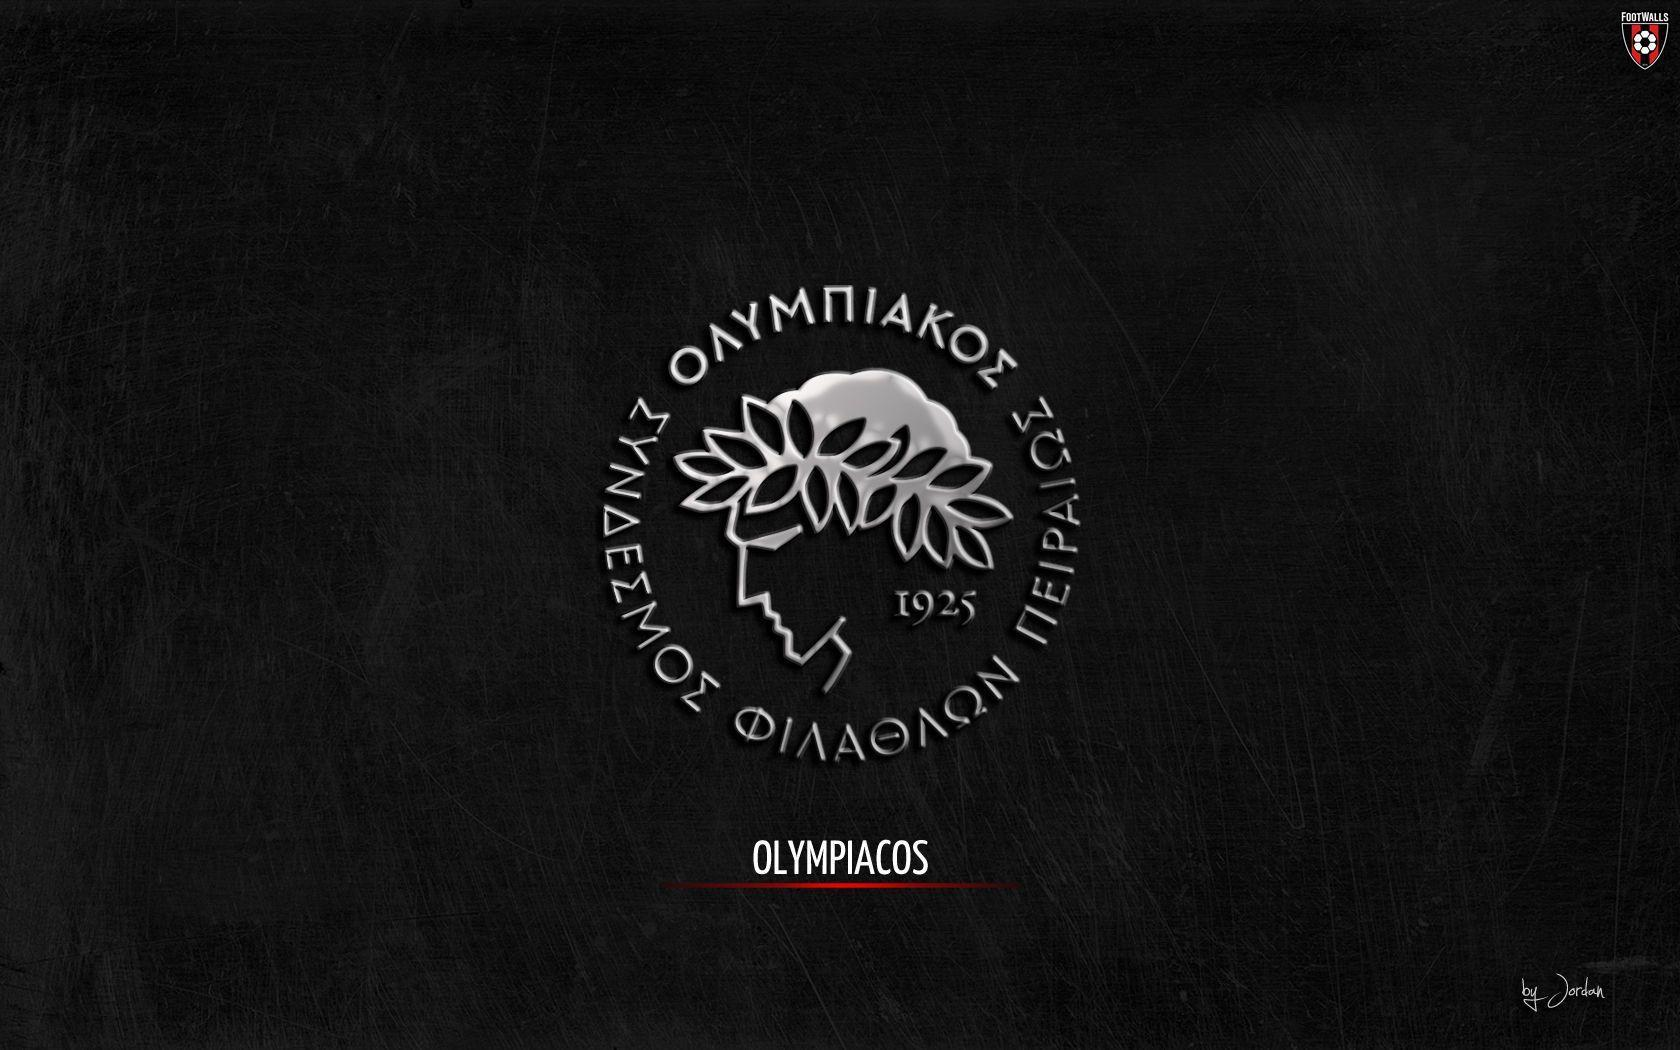 Olympiacos Wallpaper #48 - Football Wallpapers